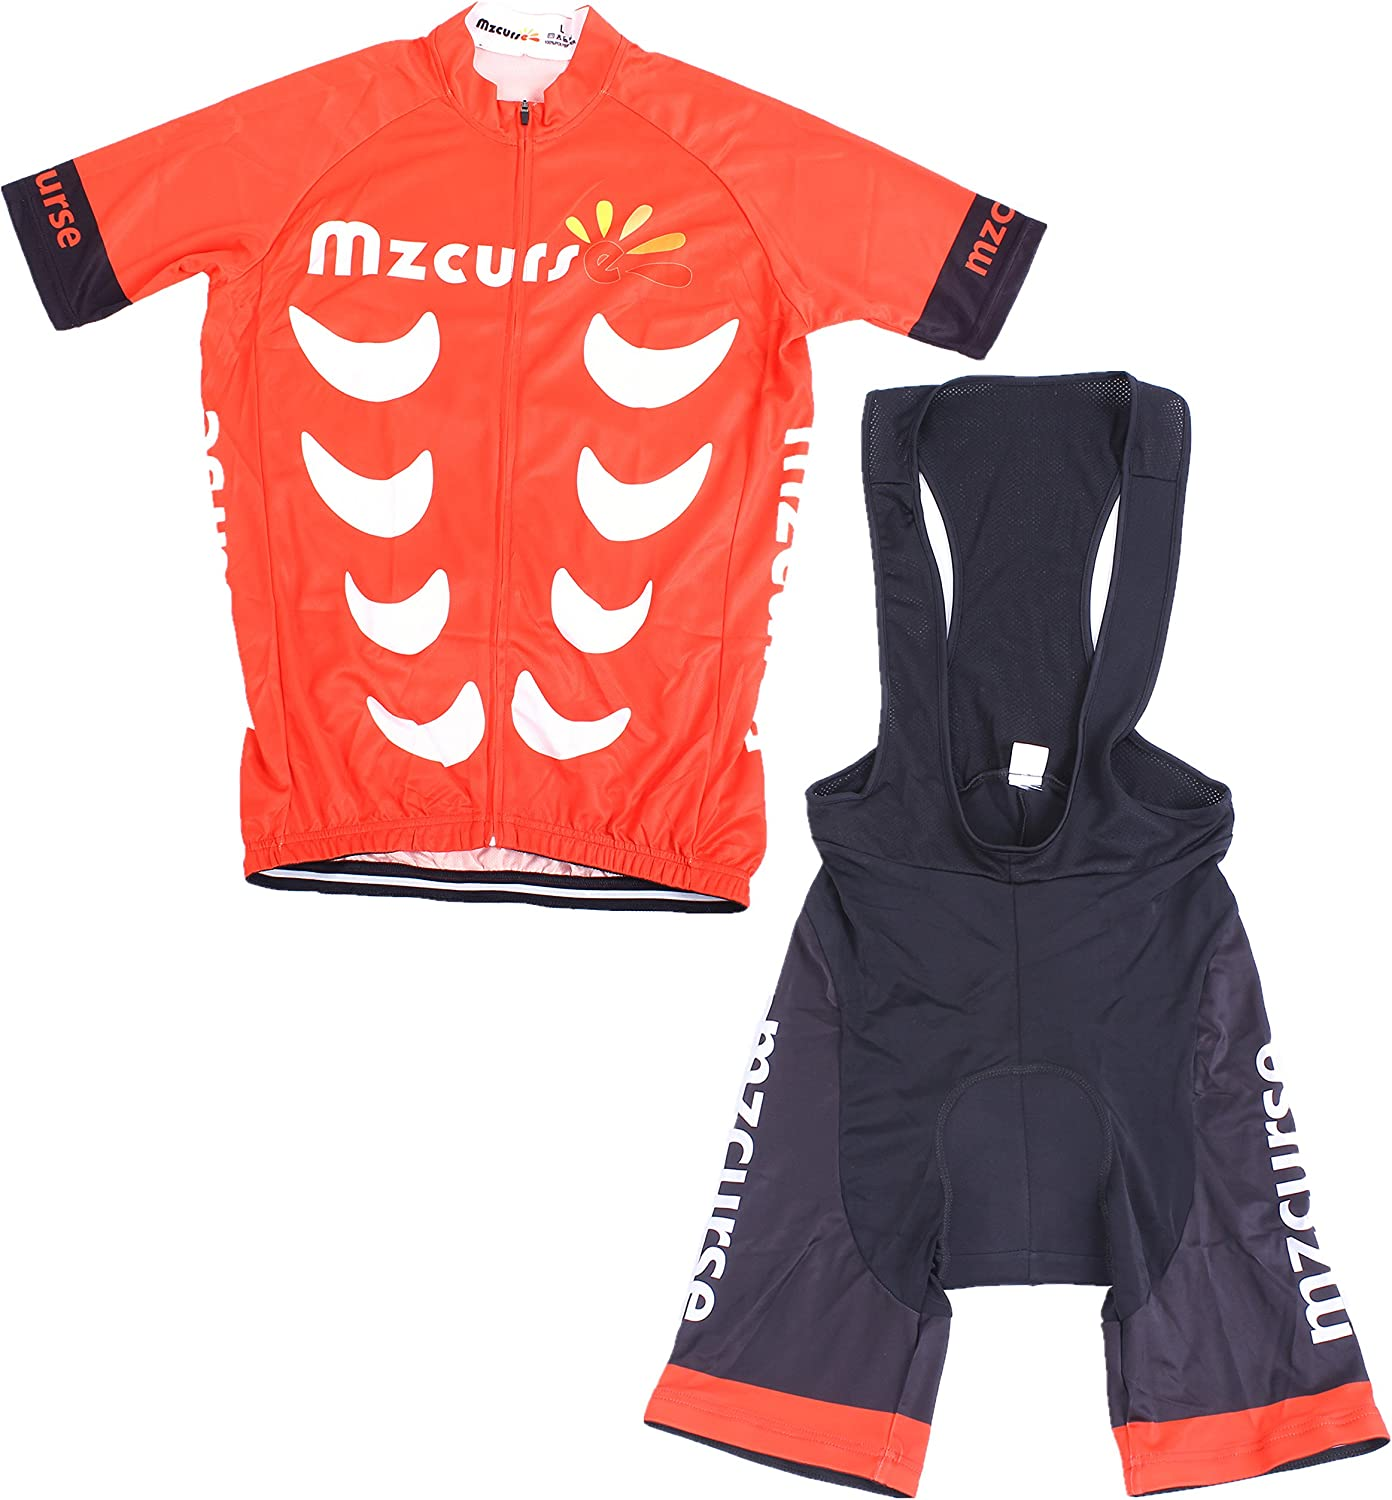 Mzcurse Cycling Team Bike Bicycle Cycling Wear Mountain Short Shirt Jersey + Shorts Suit Sets (Red2 Bib, L)